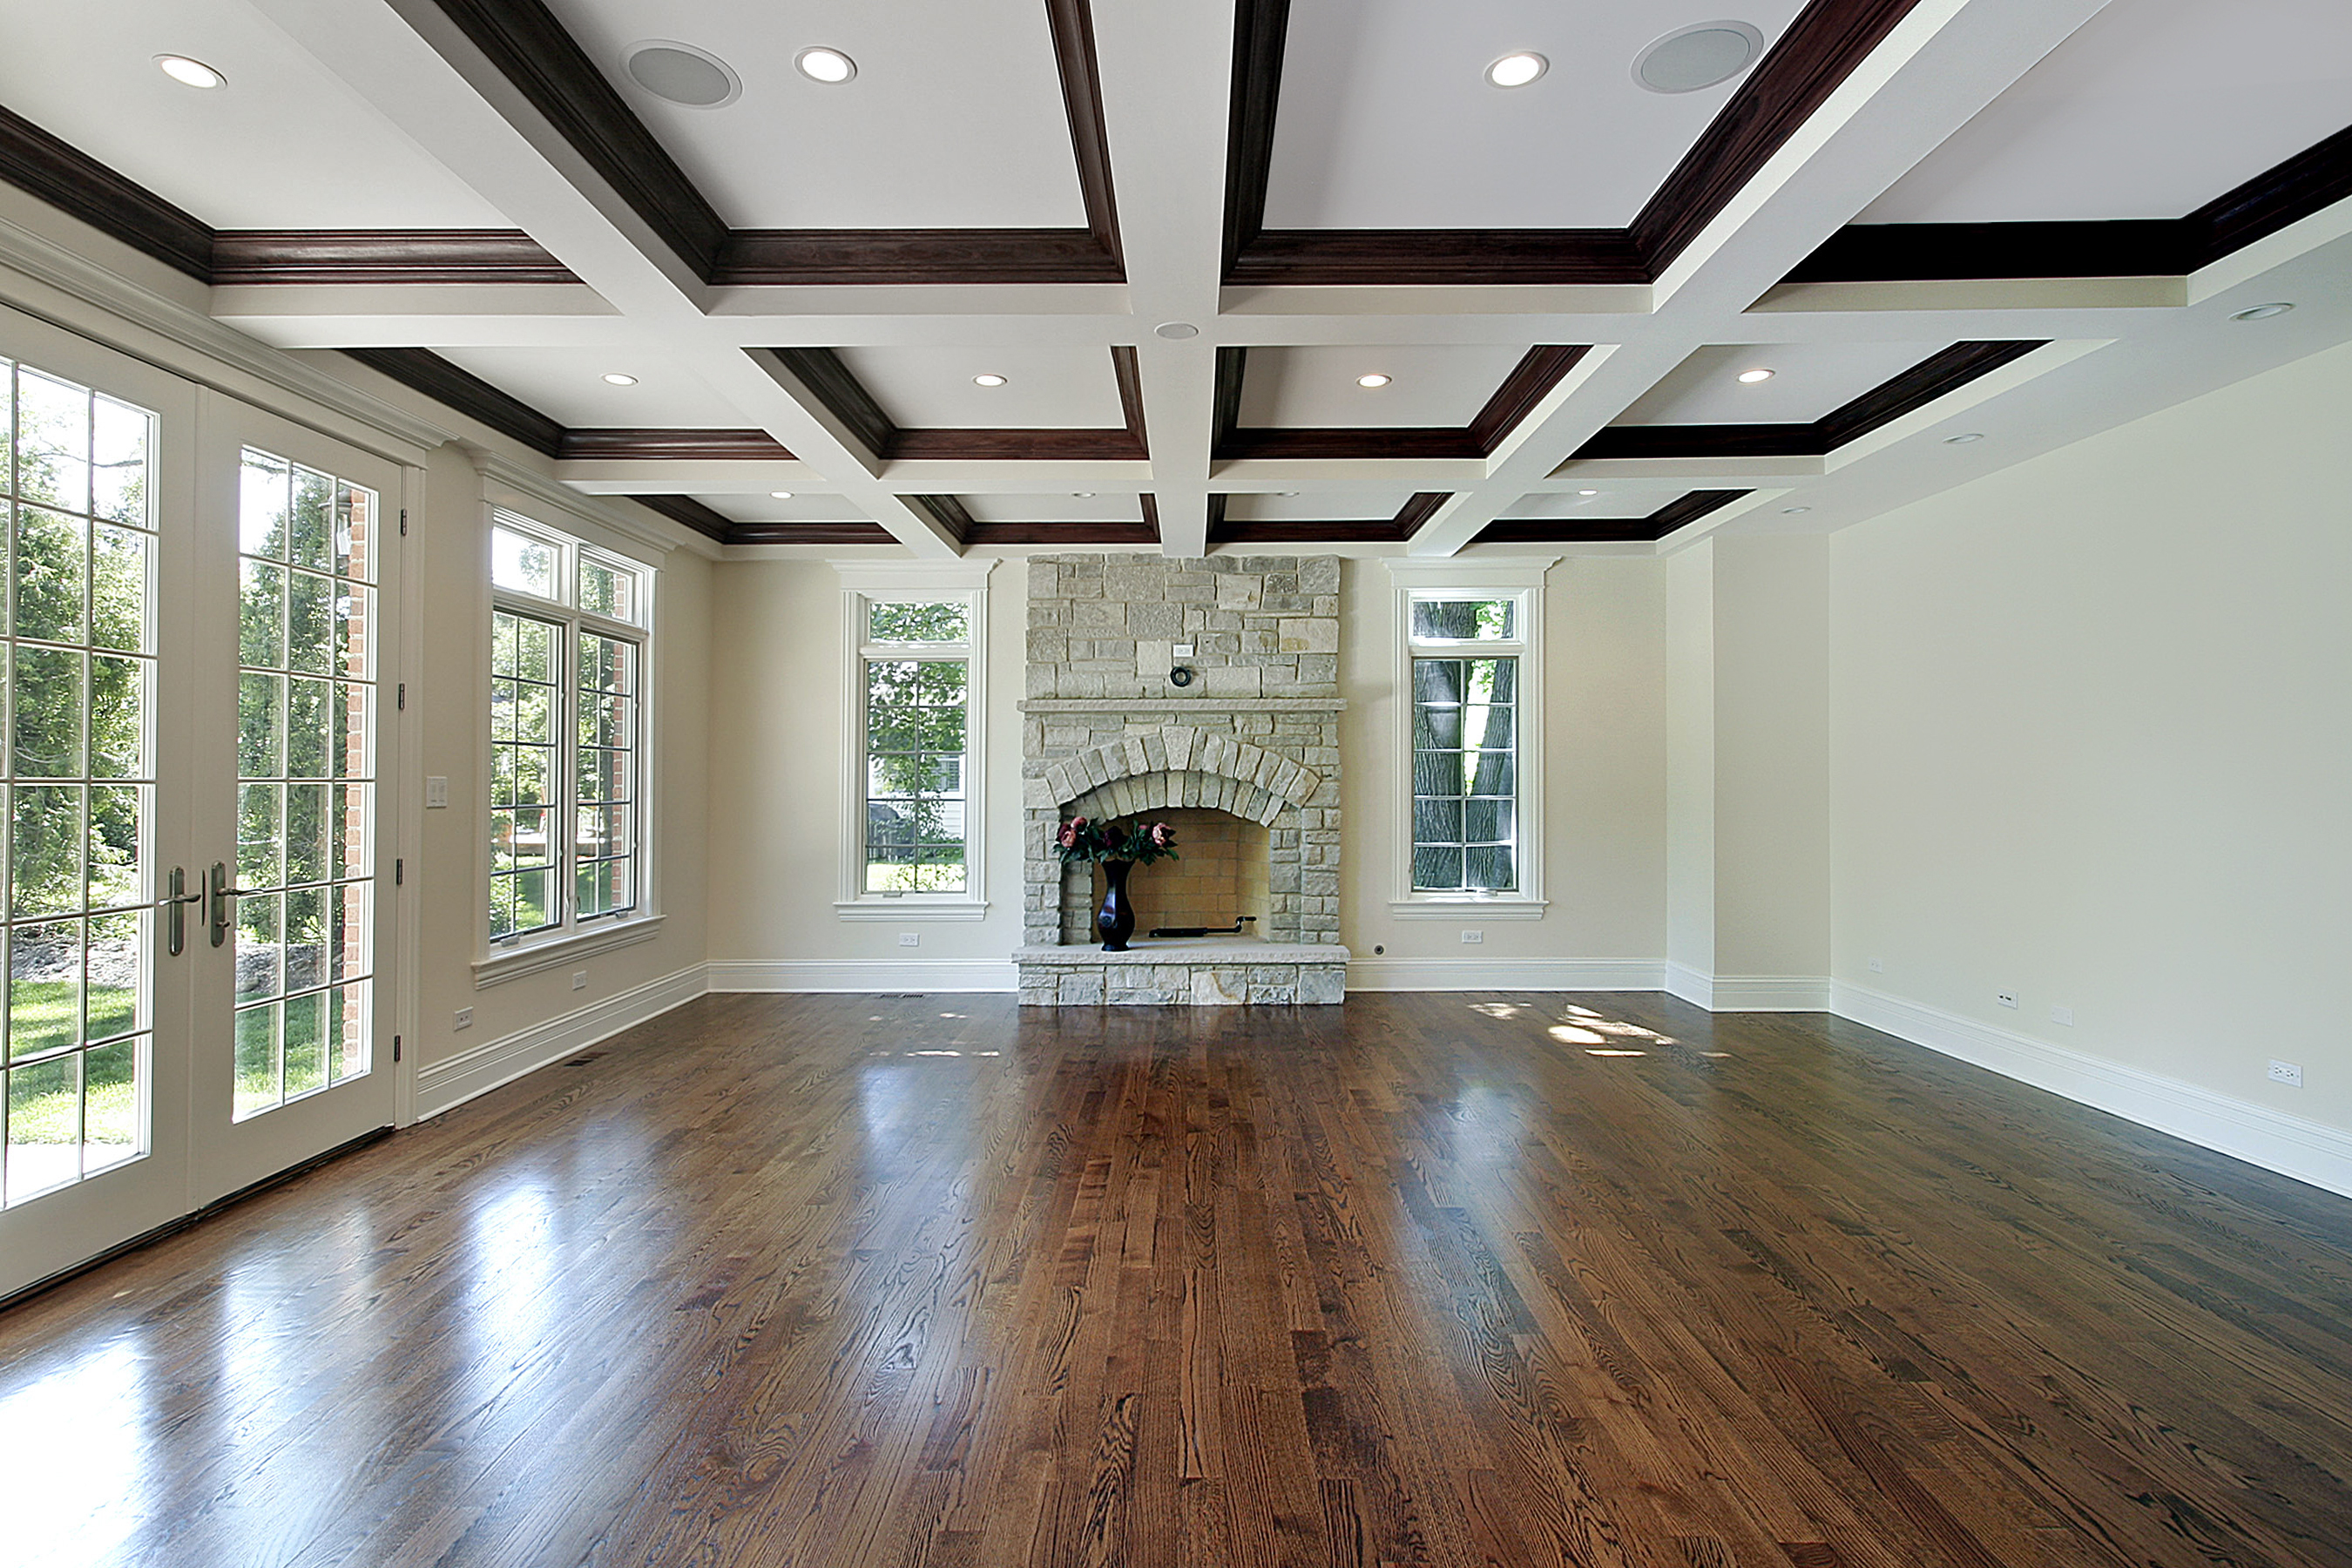 Living Room In New Construction Home.jpg